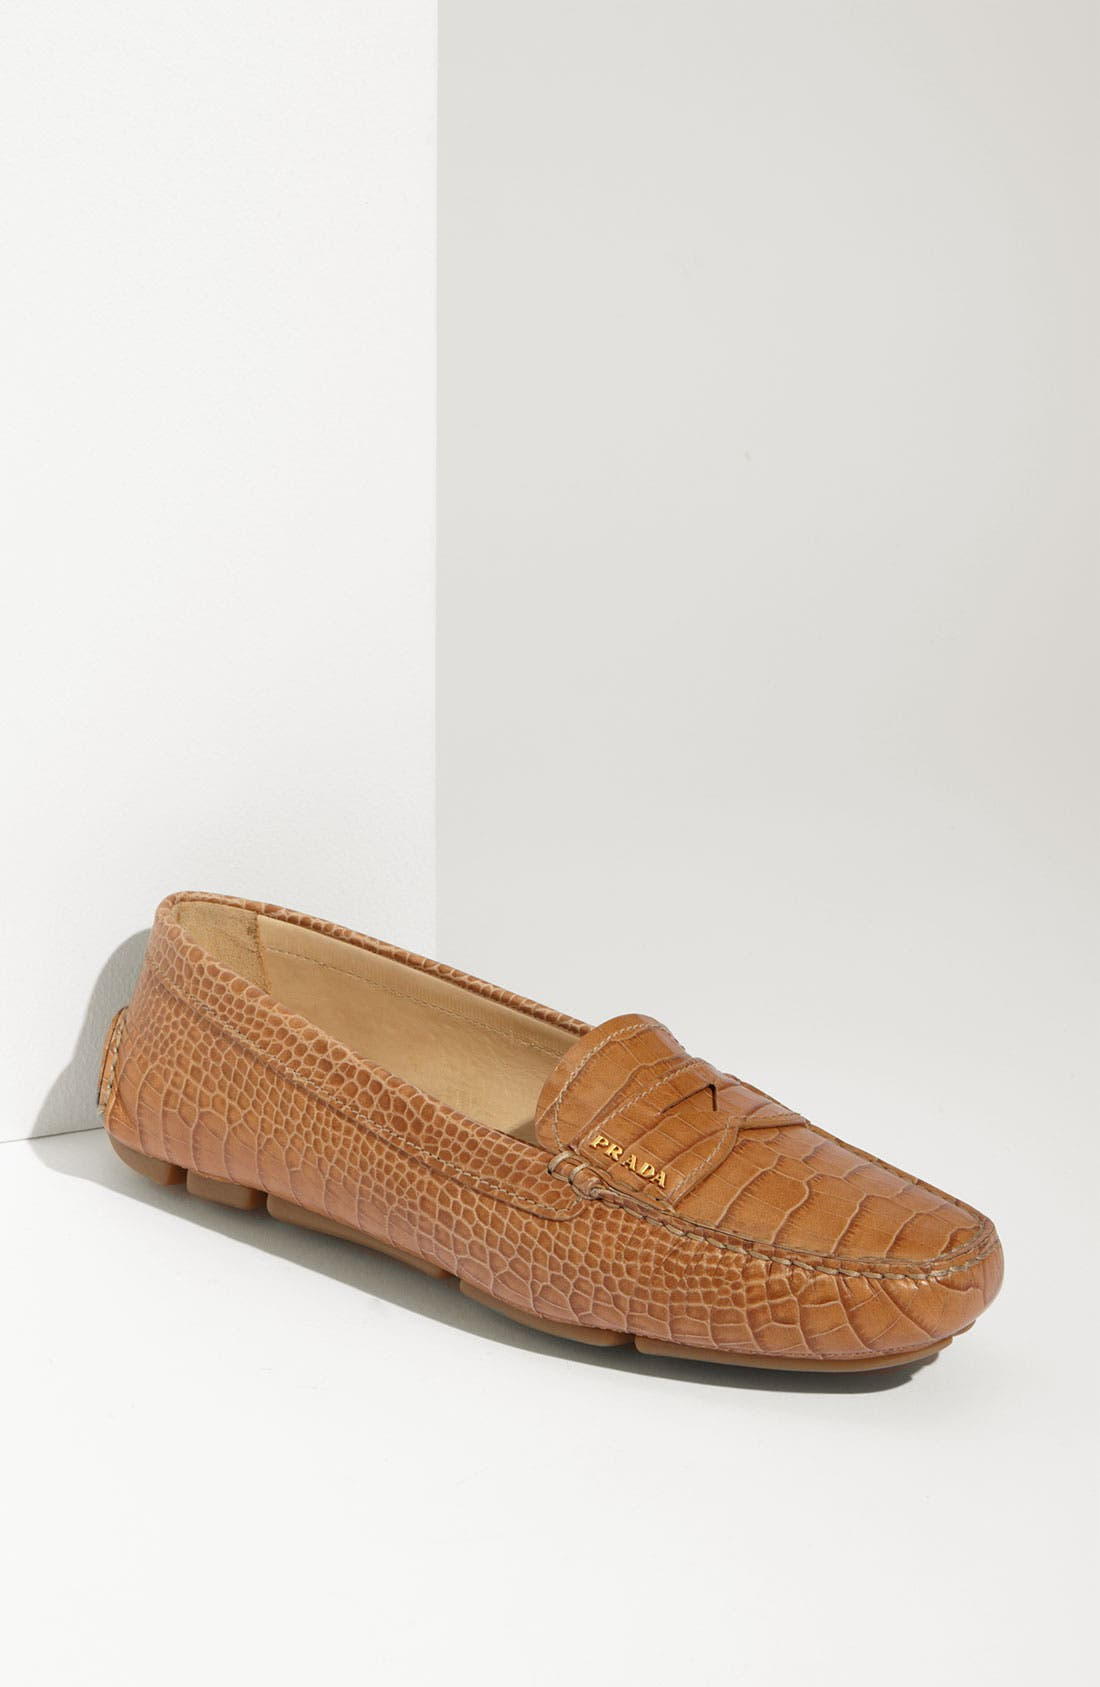 Main Image - Prada Snake Stamped Leather Driving Moccasin